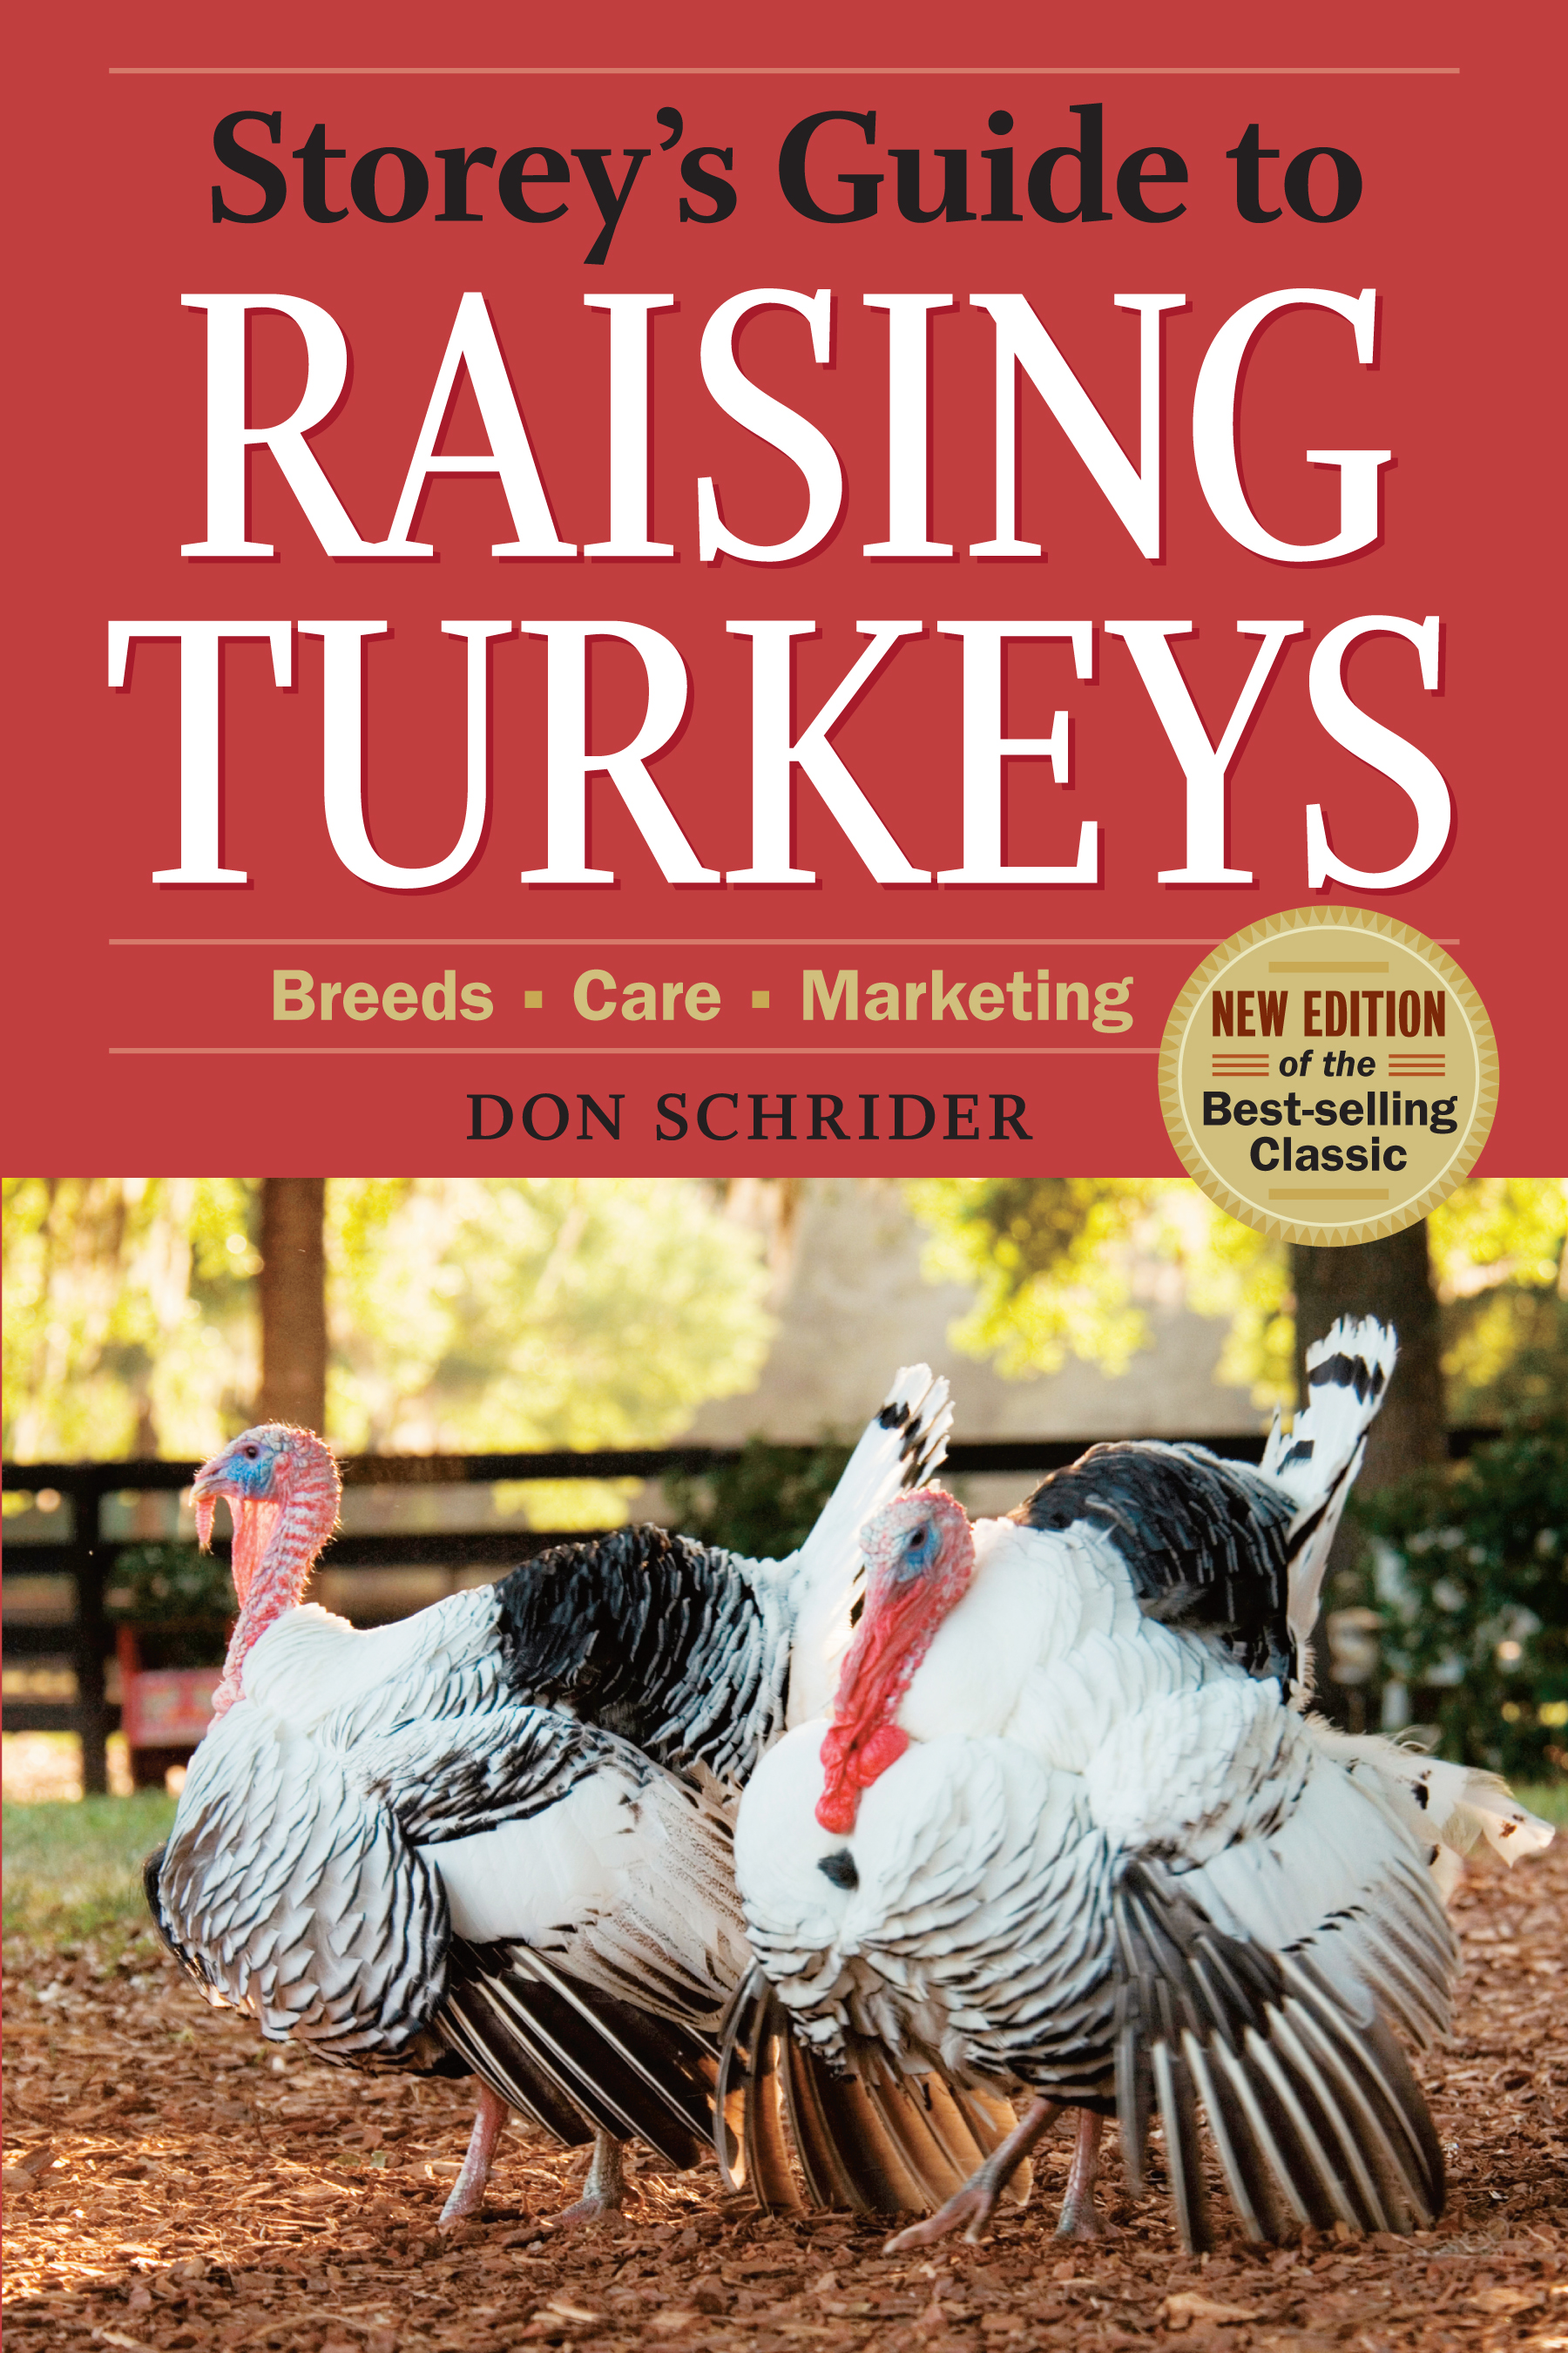 Storey's Guide to Raising Turkeys, 3rd Edition Breeds, Care, Marketing - Don Schrider